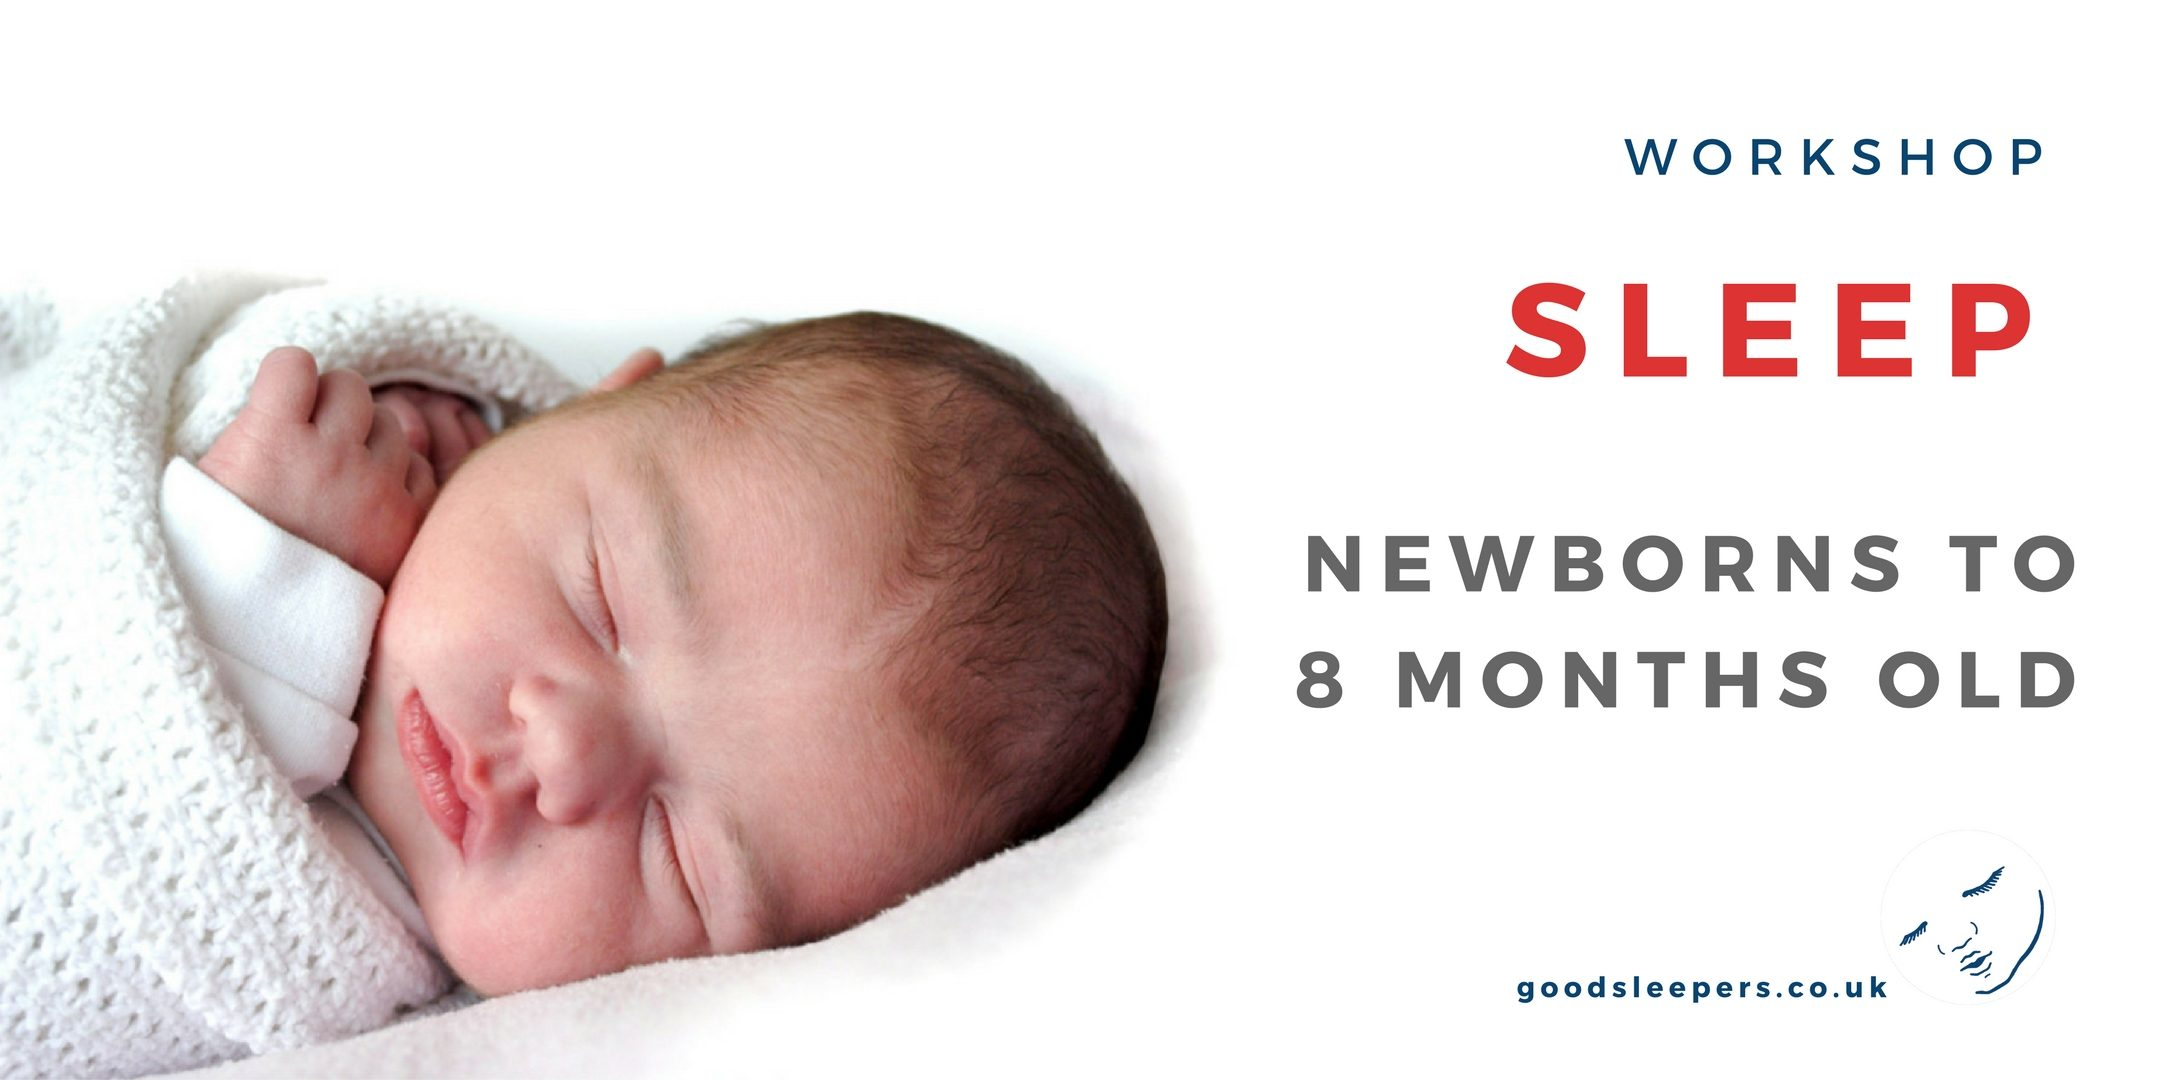 newborns workshop